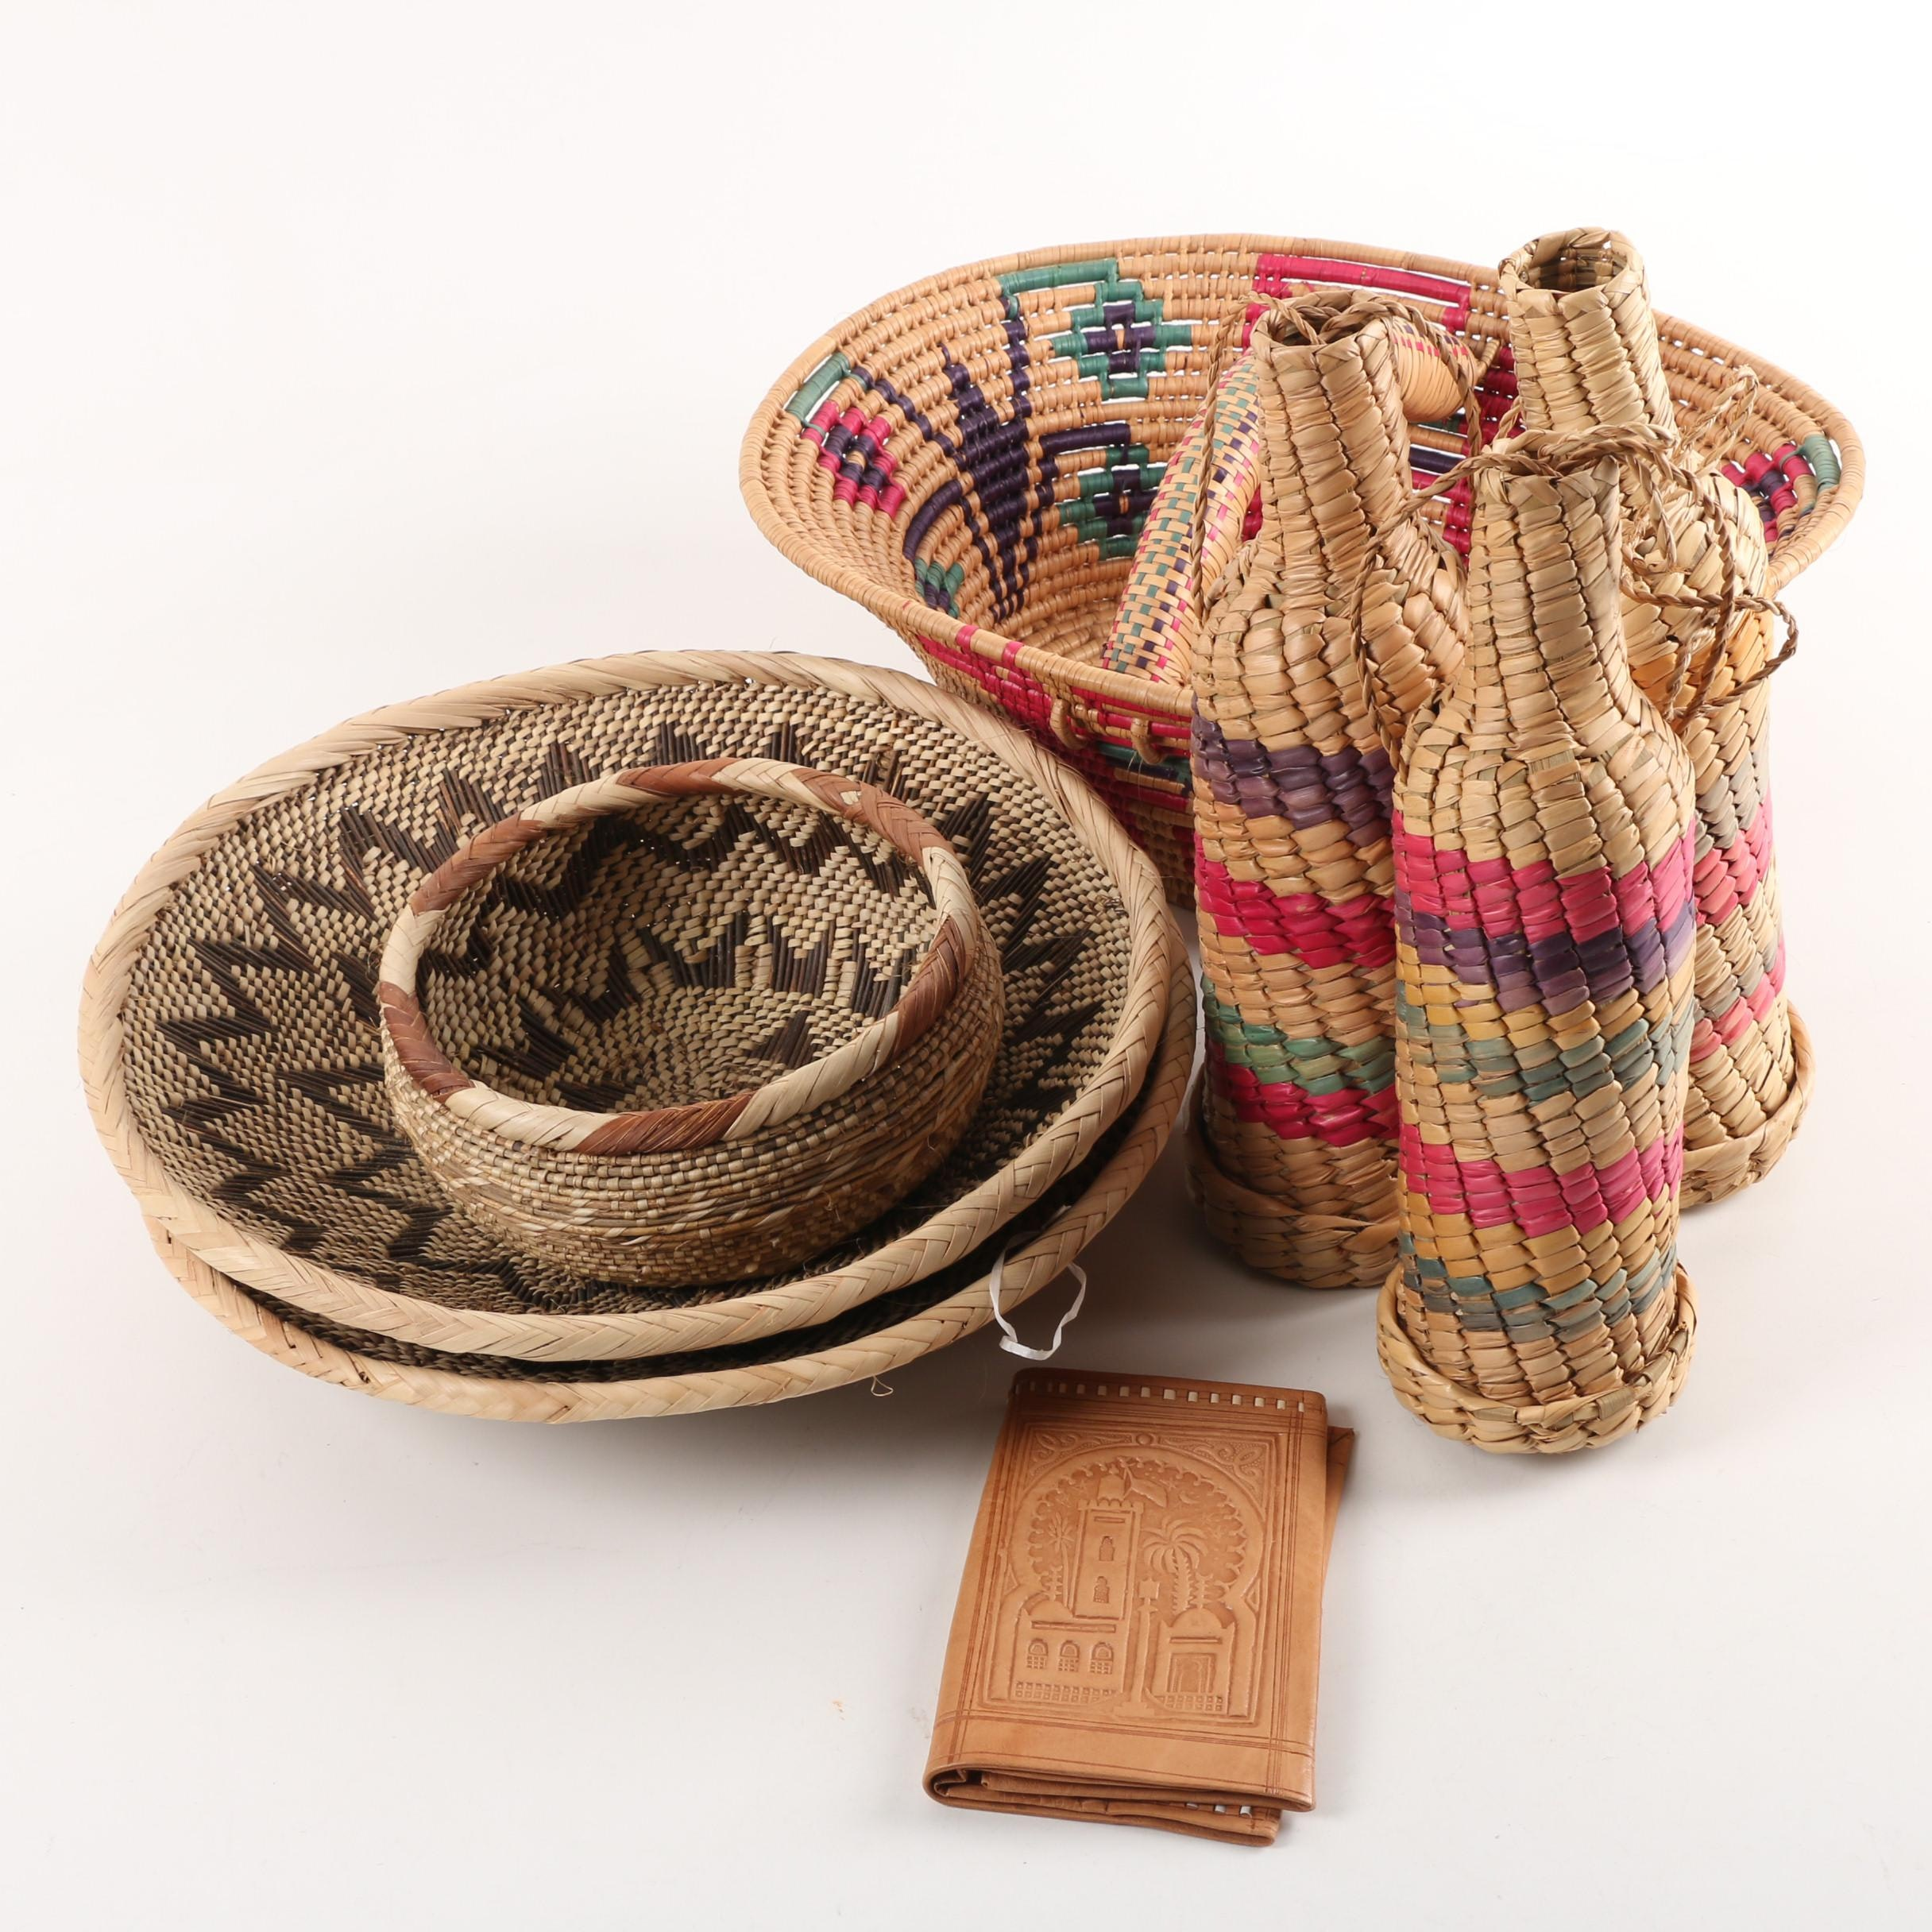 Woven Basket, Bottle Cozies, and Bowls with Leather Wallet